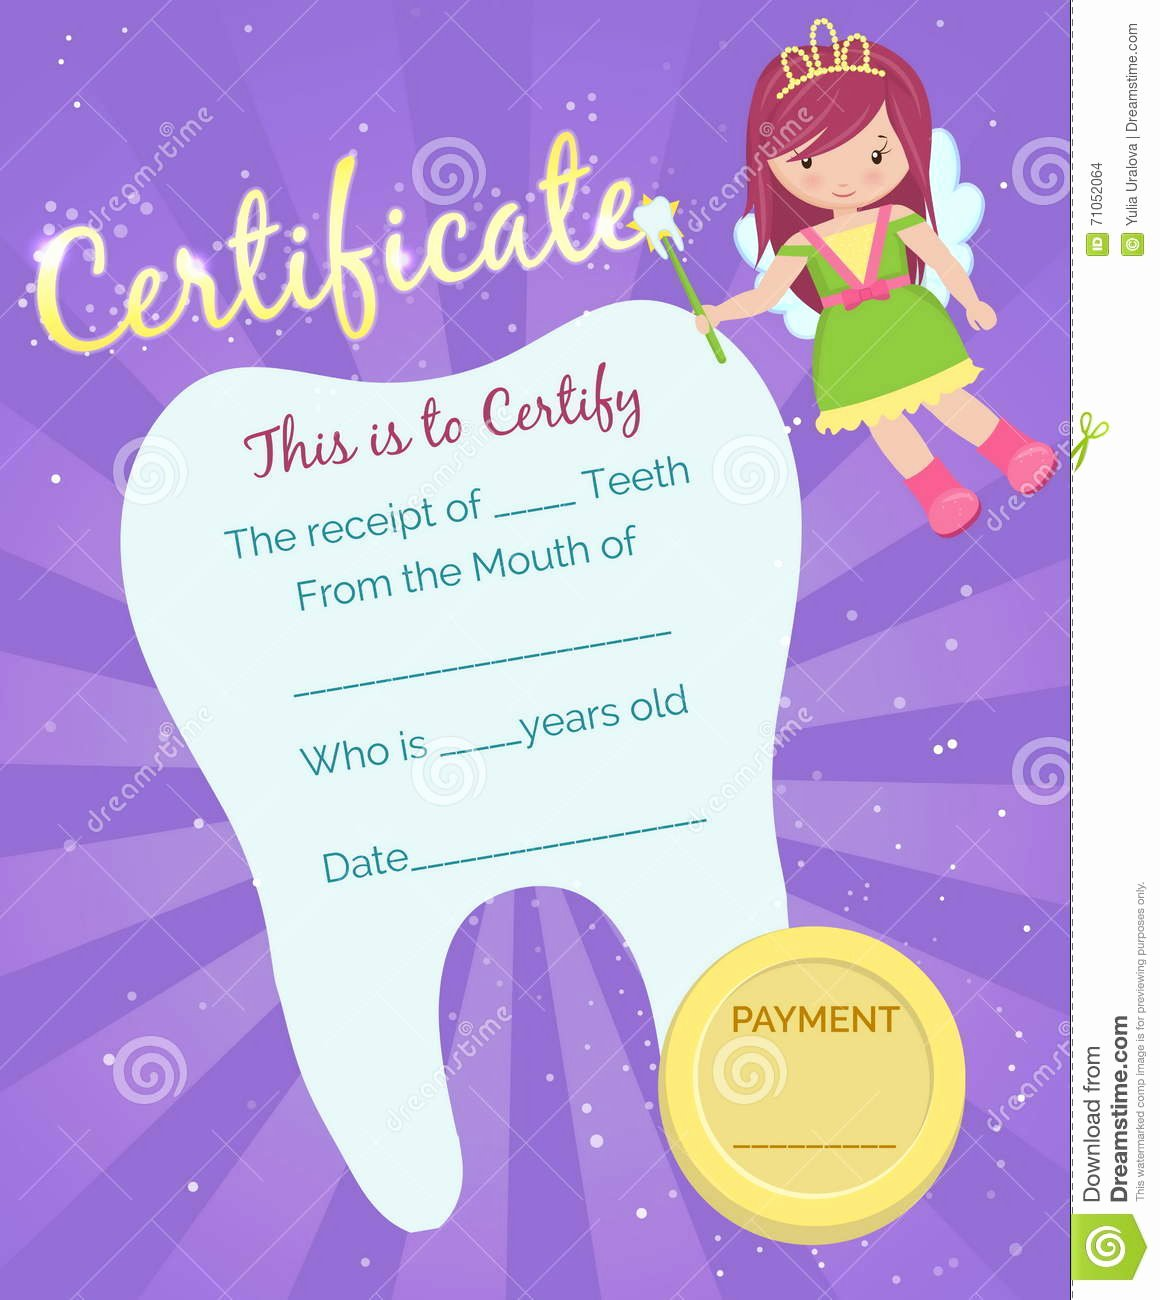 Teeth Whitening Gift Certificate Template Best Of tooth Fairy Receipt Certificate Template Stock Vector